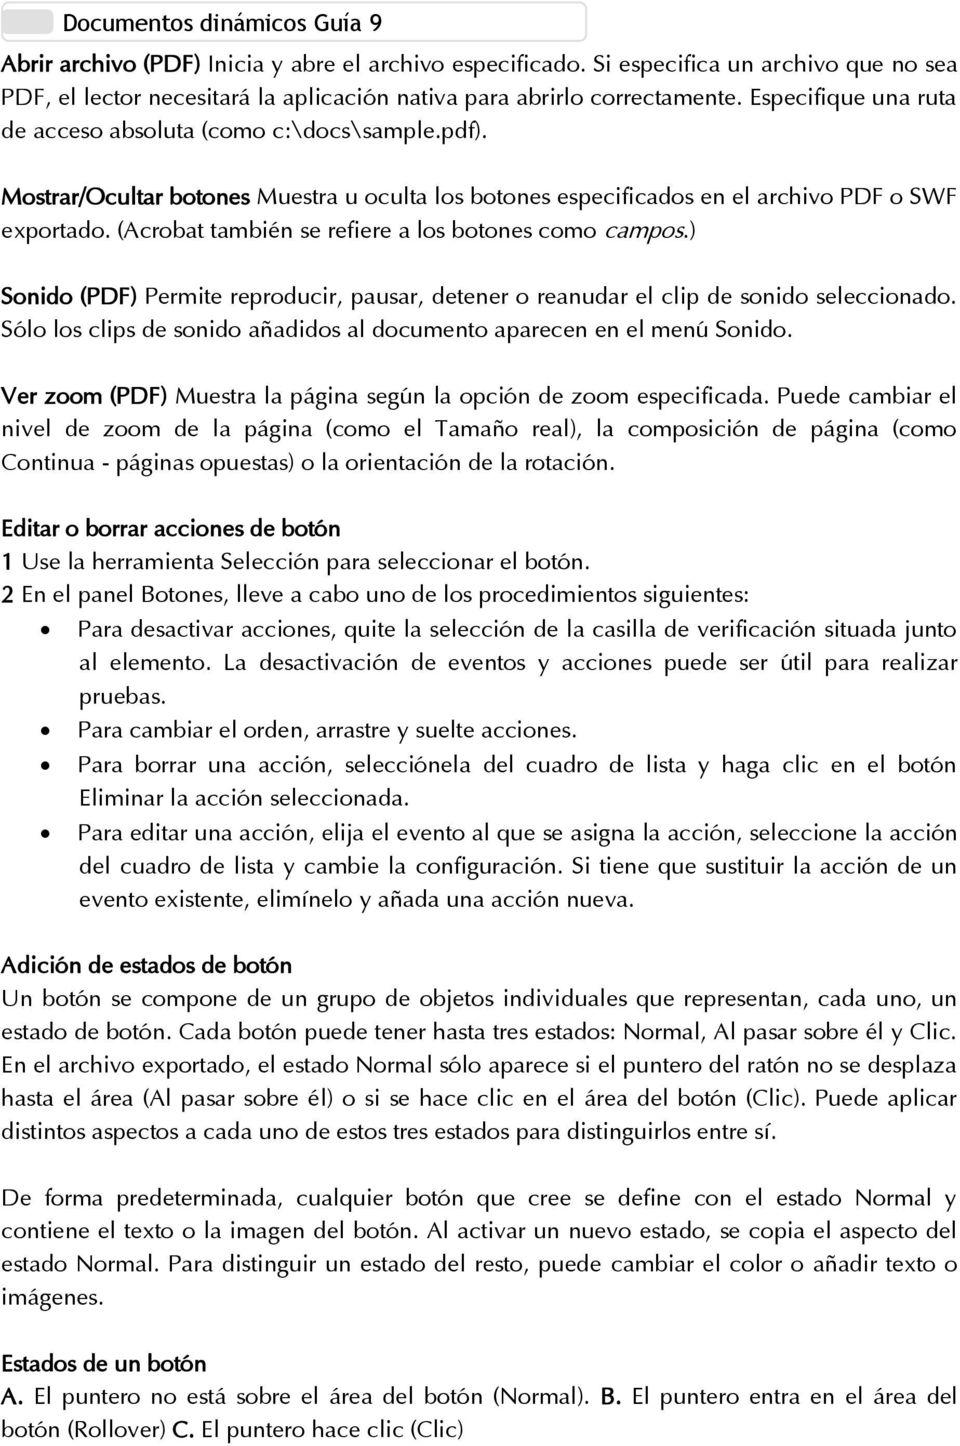 Tema: Documentos dinámicos - PDF